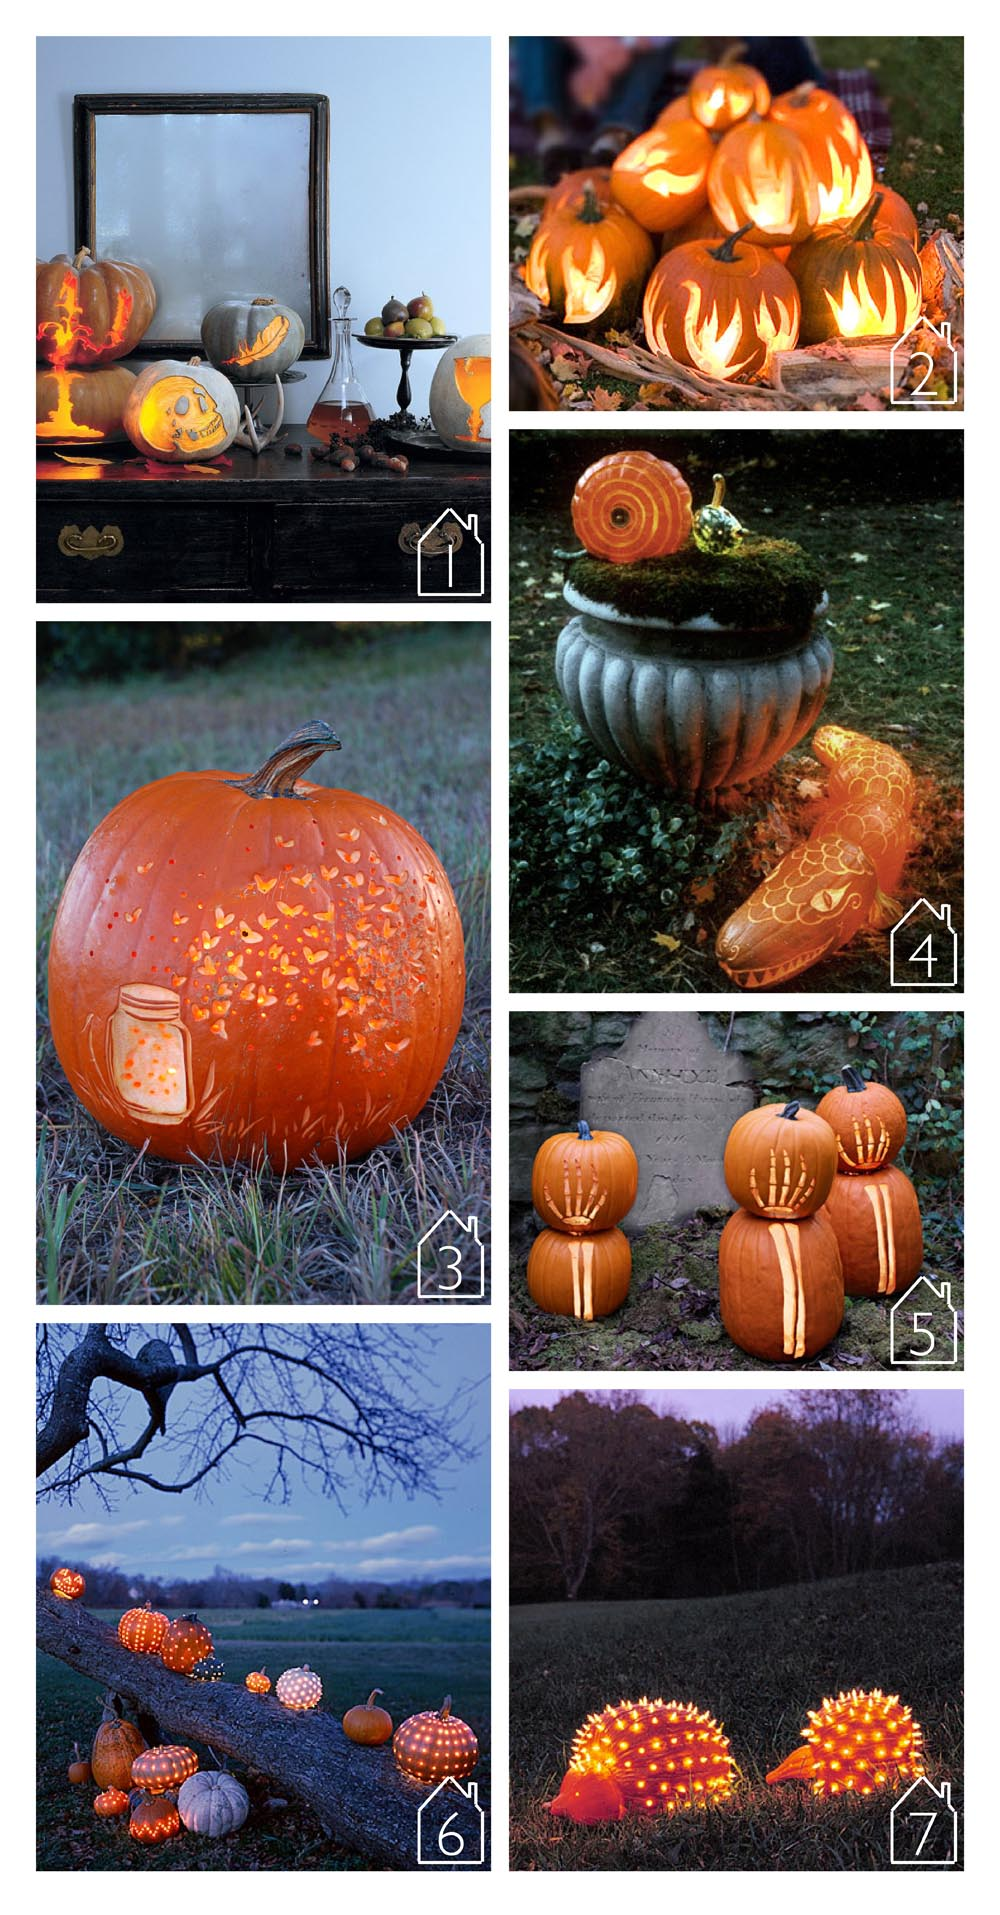 1. etched pumpkins via  Martha Stewart   2. flame pumpkins via  Better Homes and Gardens   3. mason jar pumpkin via  HGTV Gardens   4. alligator pumpkin via  Martha Stewart   5. skeleton pumpkin via  Country Living   6. celestial pumpkins via  Martha Stewart   7. porcupine pumpkins via  Martha Stewart